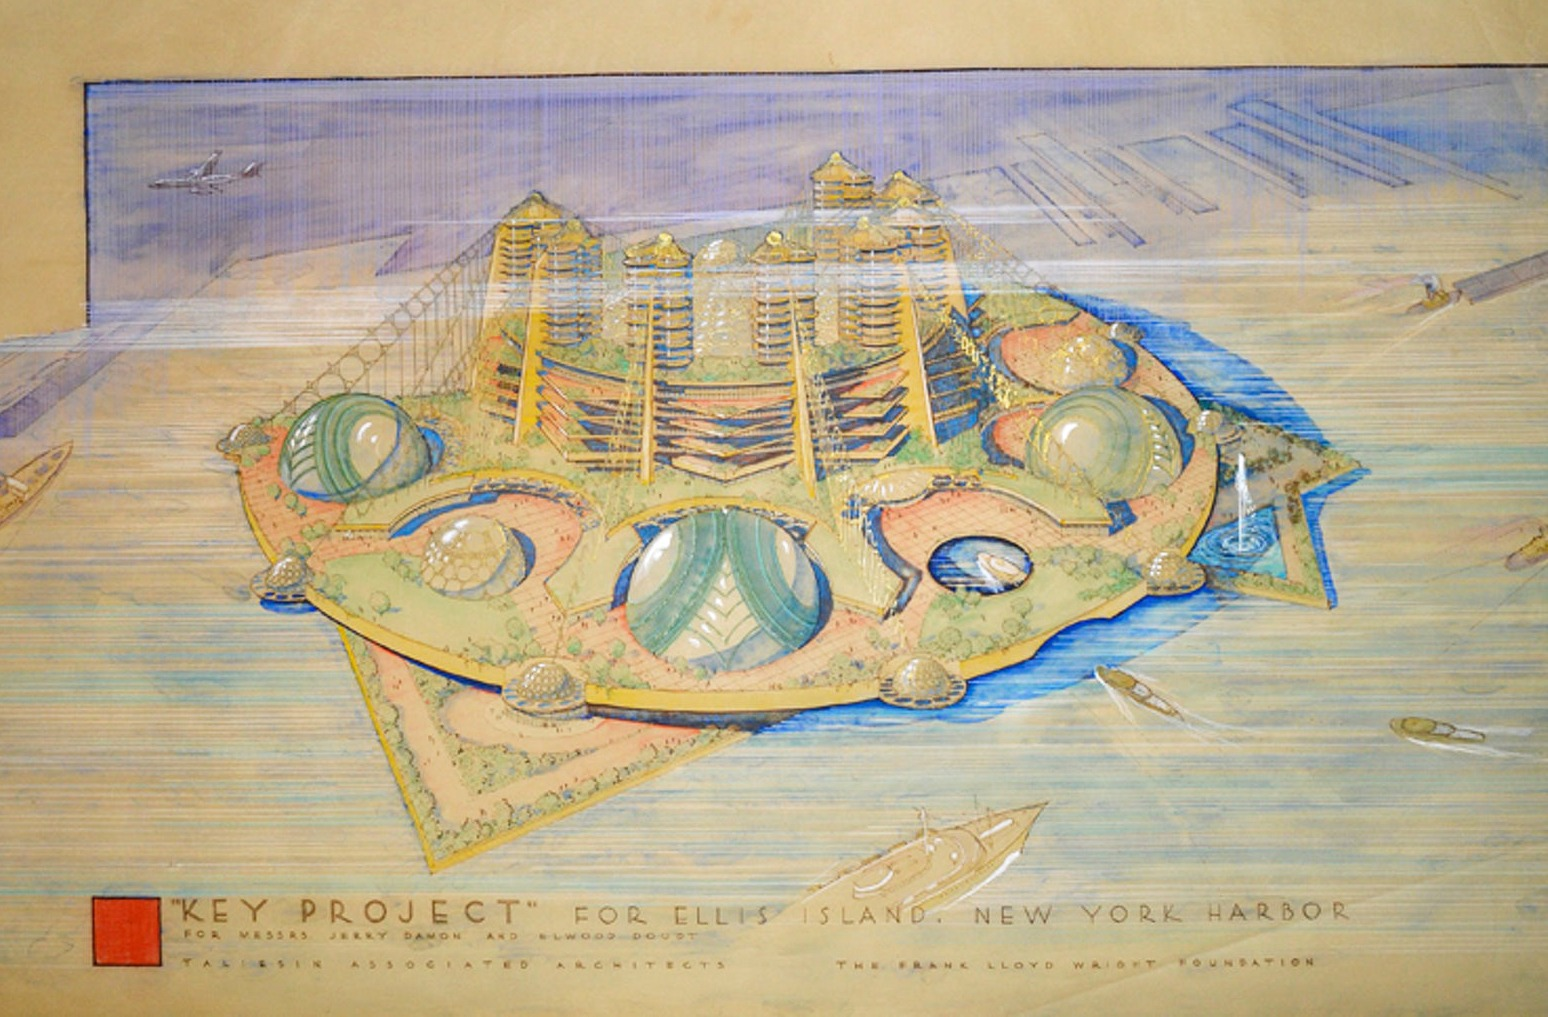 Frank Lloyd Wright had a plan to build a 'city of the future ... on history us map, the great depression us map, california us map, buffalo us map, new orleans us map, hudson river us map, new york city us map, brooklyn us map, united nations us map, manhattan us map, the statue of liberty us map, gettysburg us map, cape may us map, pearl harbor us map, war of 1812 us map, england us map, washington us map, united states us map, immigration us map,